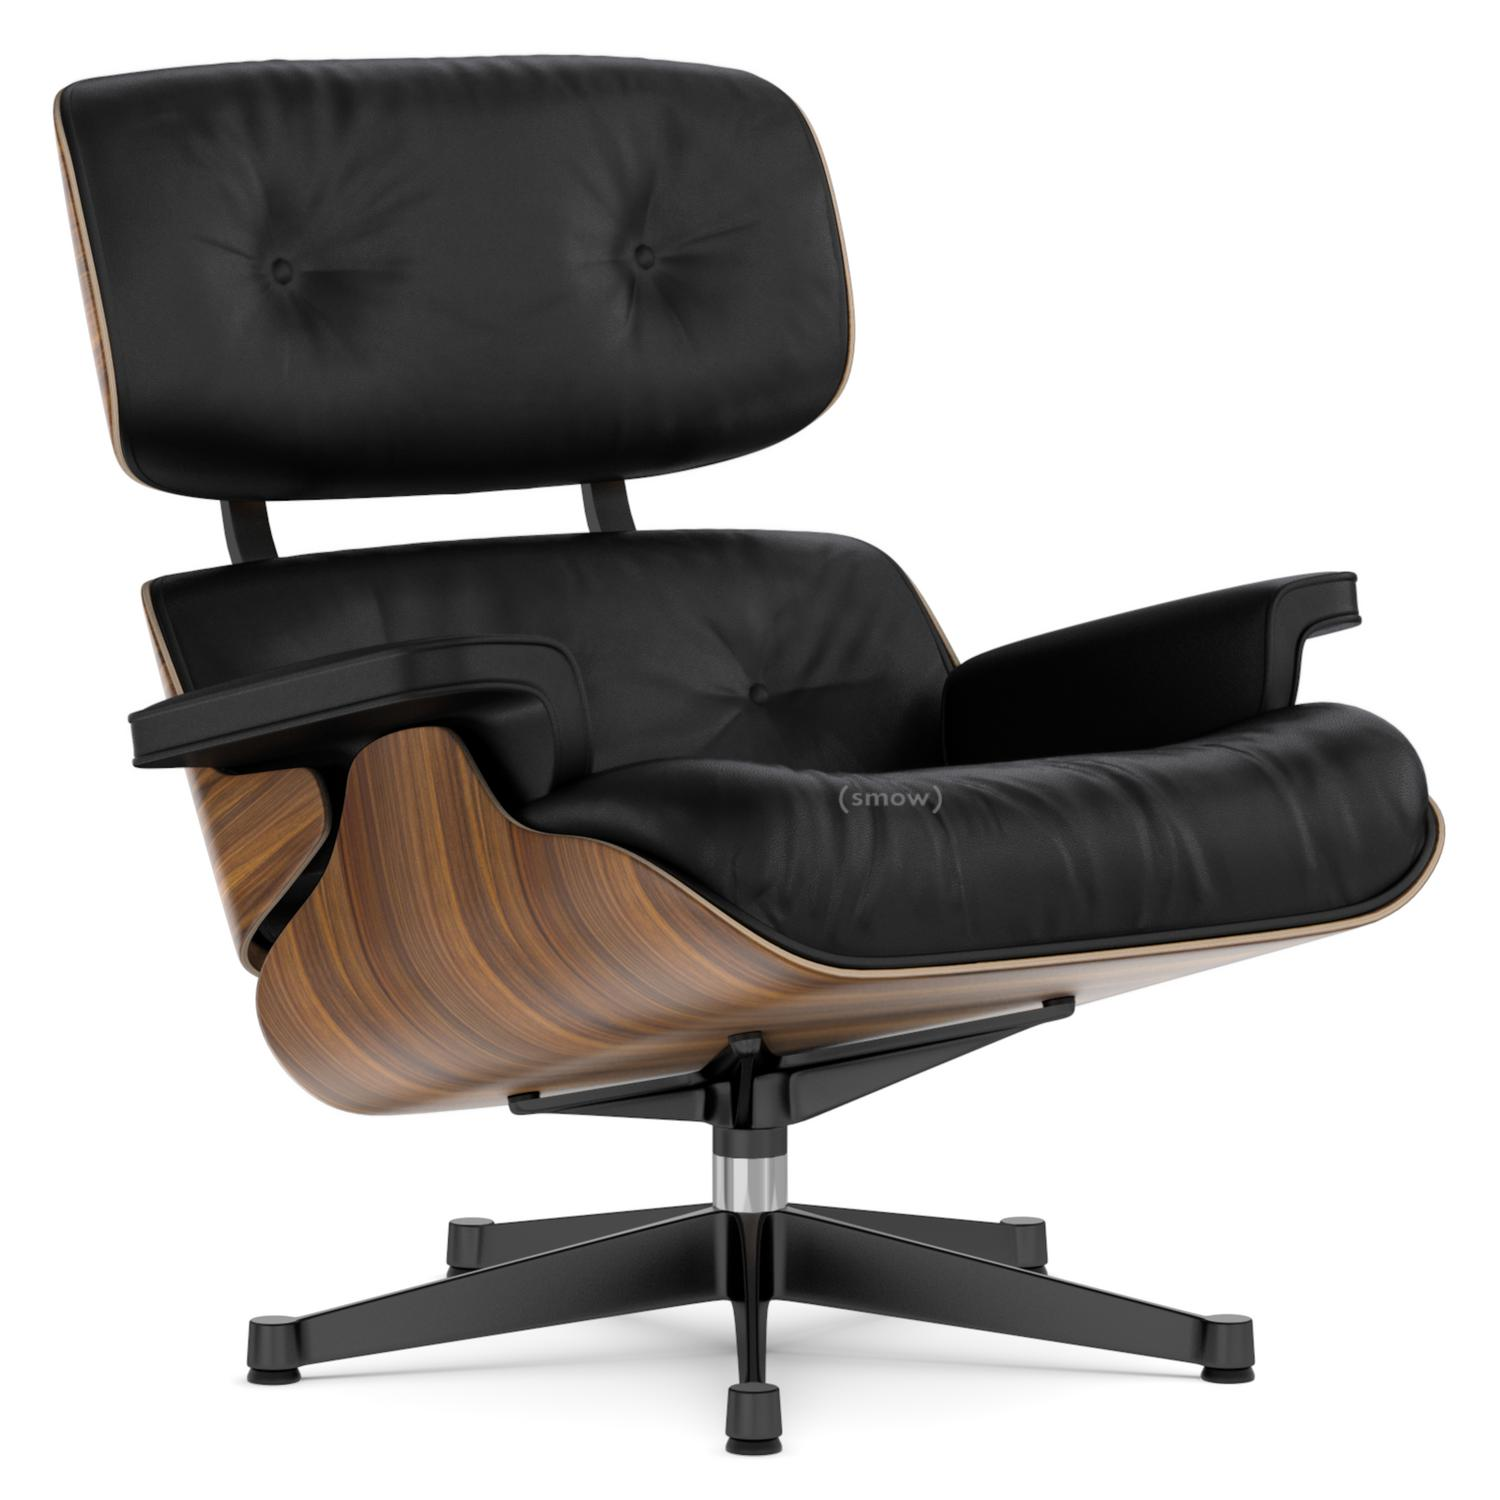 Eames Vitra Lounge Chair Vitra Eames Lounge Chair And